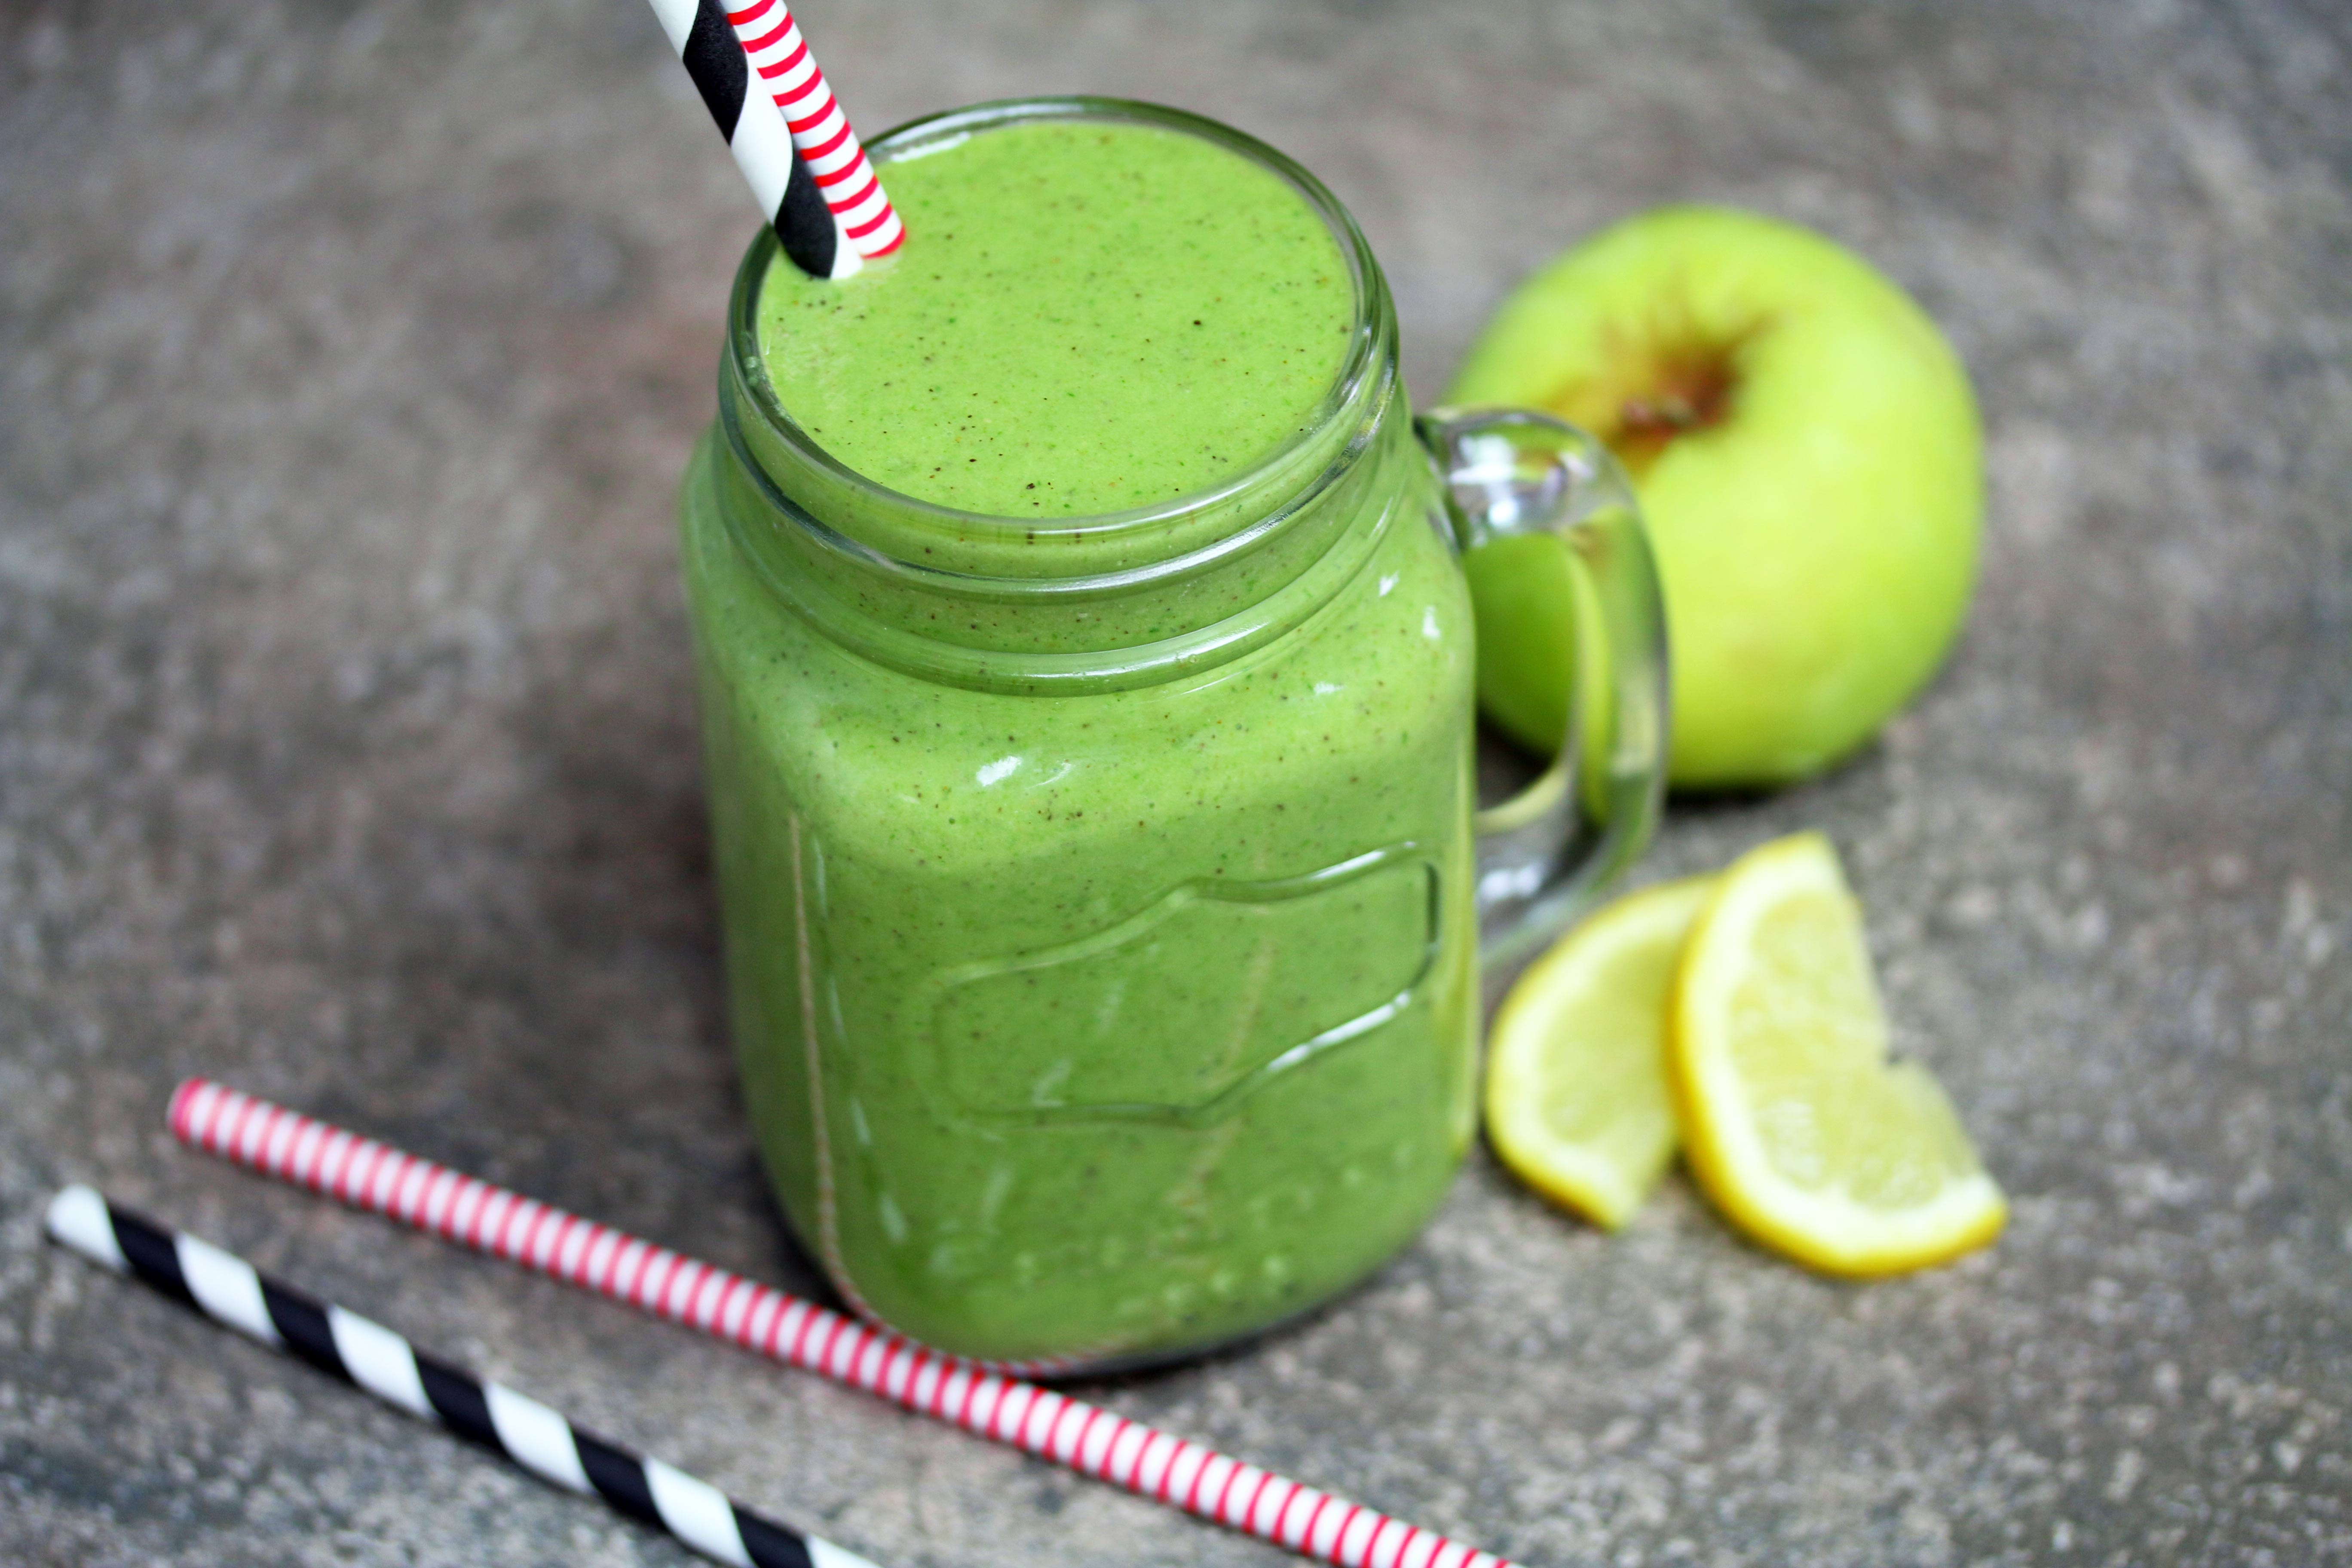 Vegan recipe video: Here's how to make a super healthy green smoothie